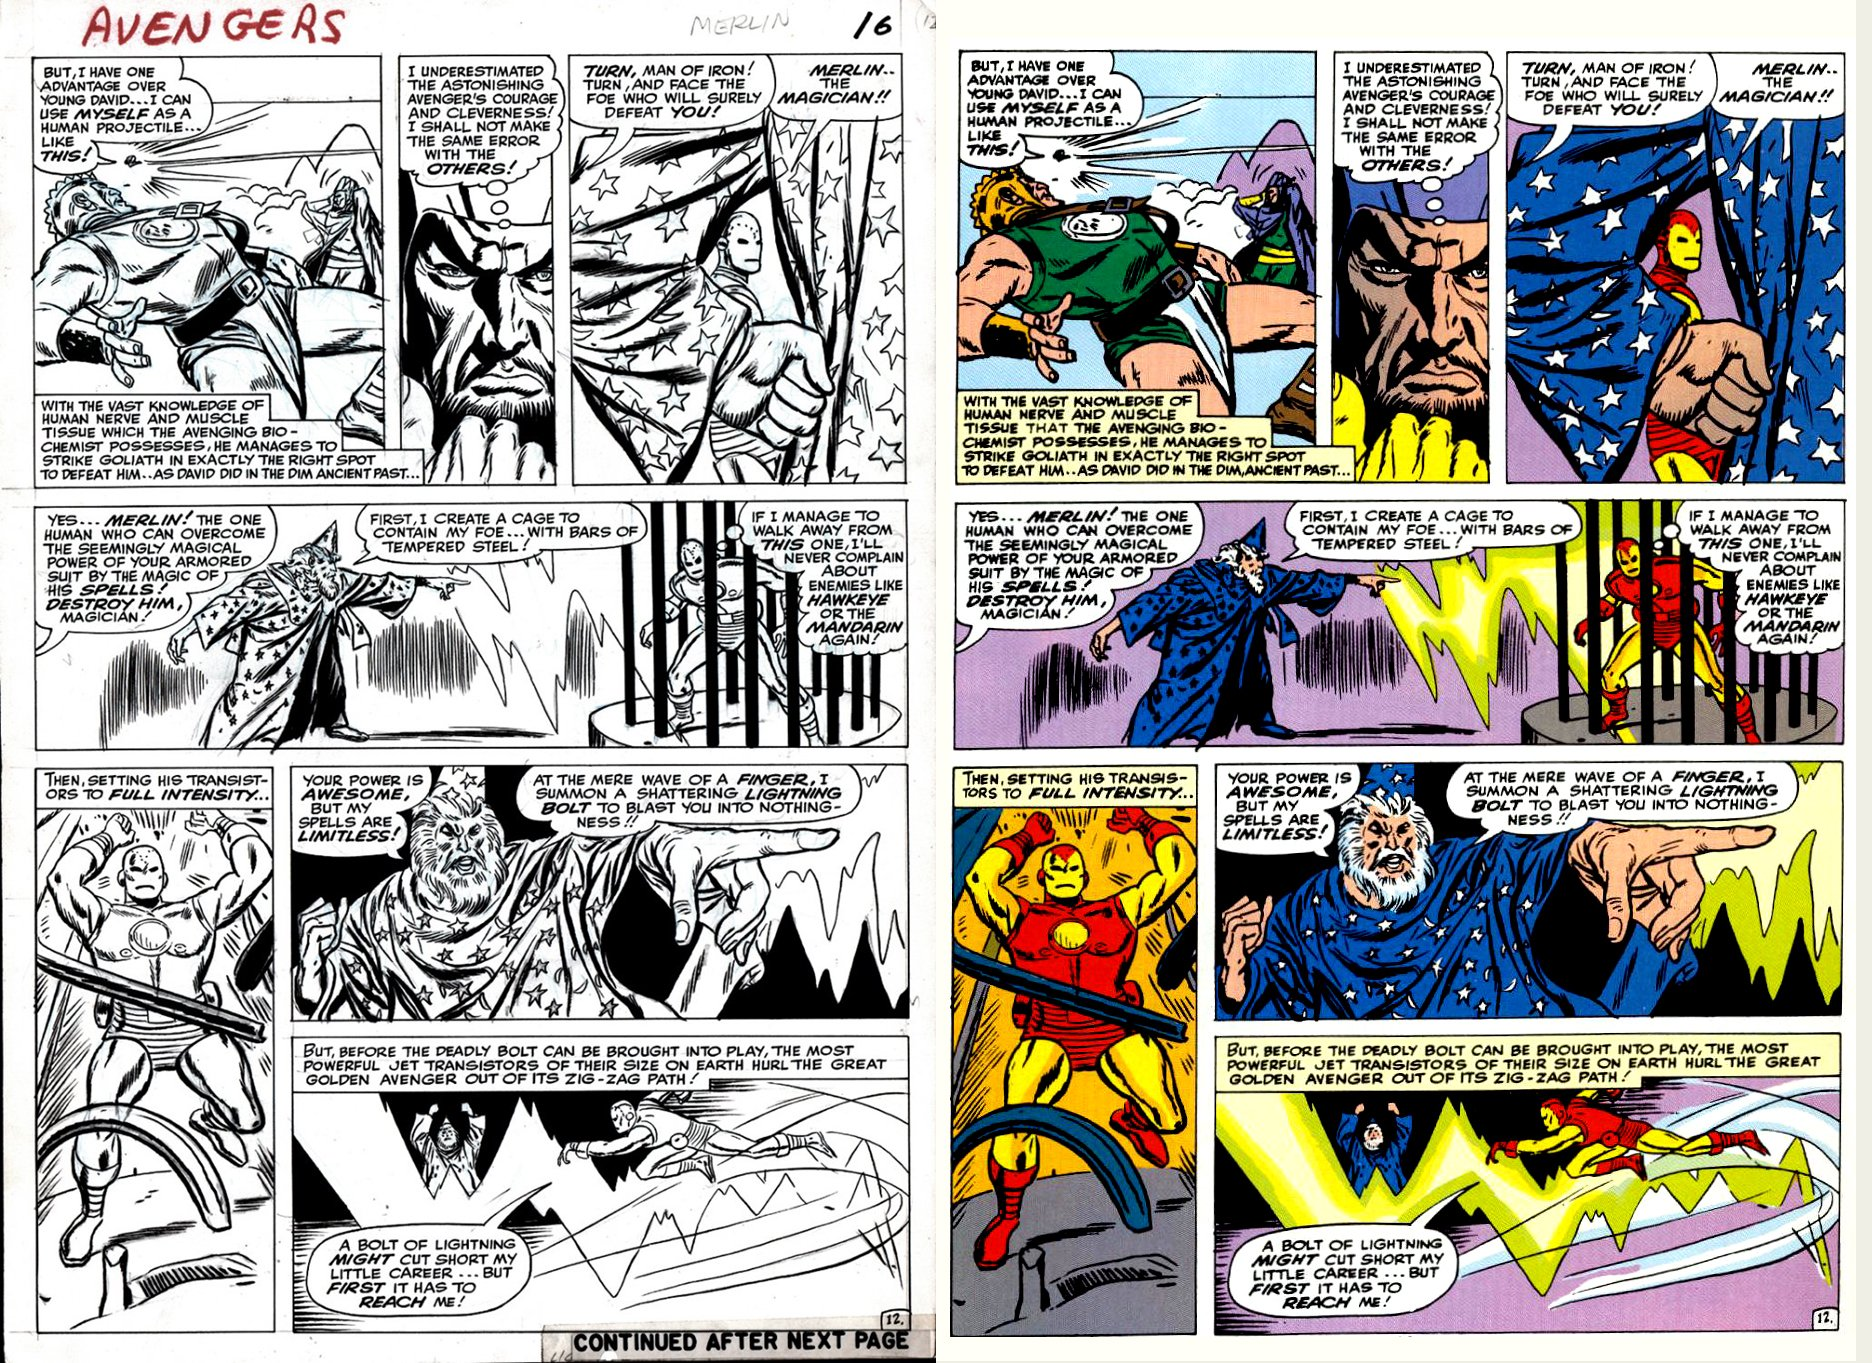 Avengers #10 p 12 (SOLD LIVE ON 'DUELING DEALERS OF COMIC ART' EPISODE #26 PODCAST ON 7-21-2021 (RE-WATCH THIS FUNNY ART SELLING SHOW HERE)